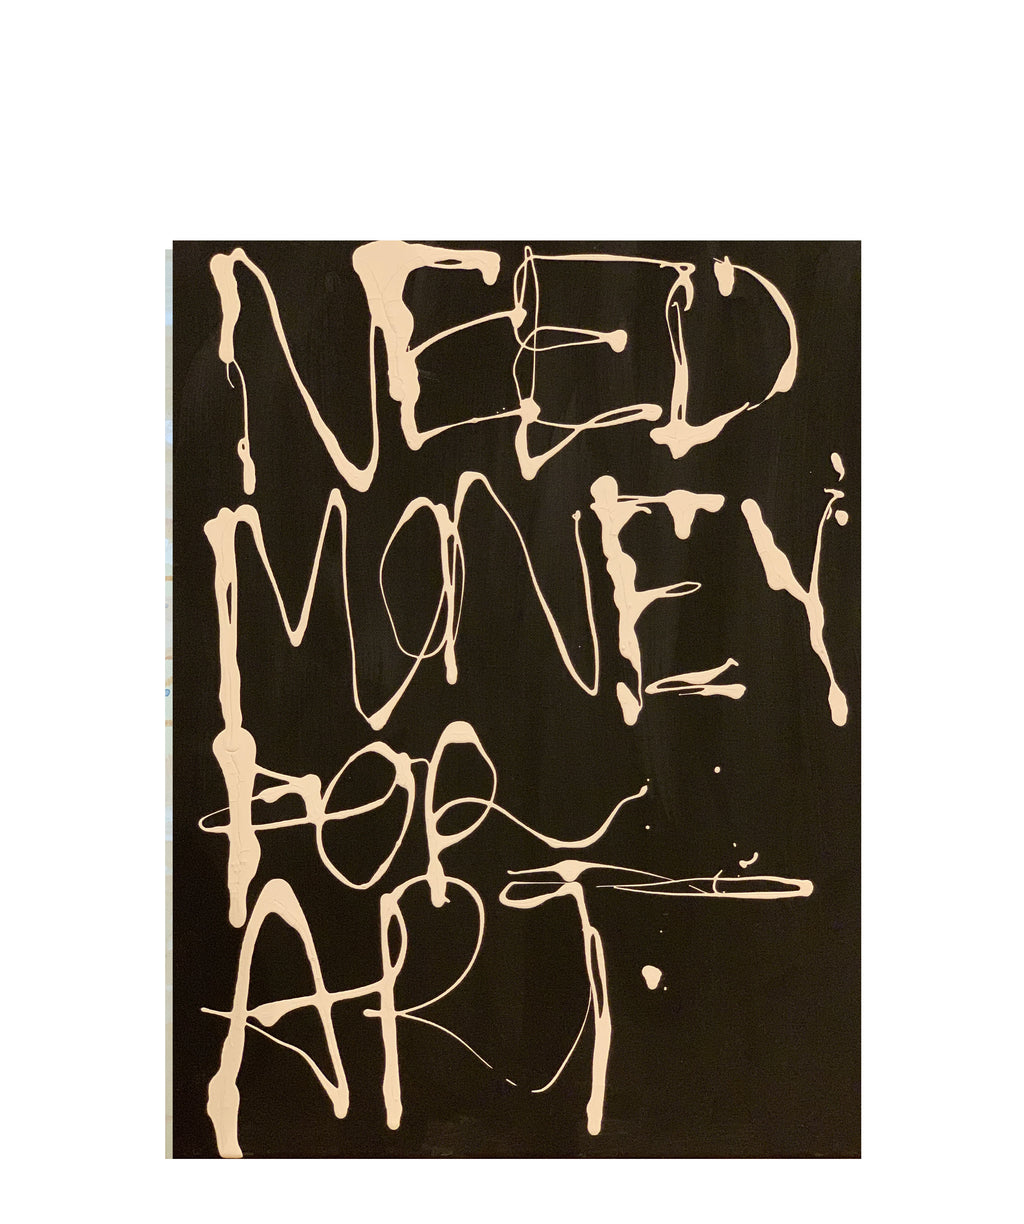 NEED MONEY FOR ART PRINT